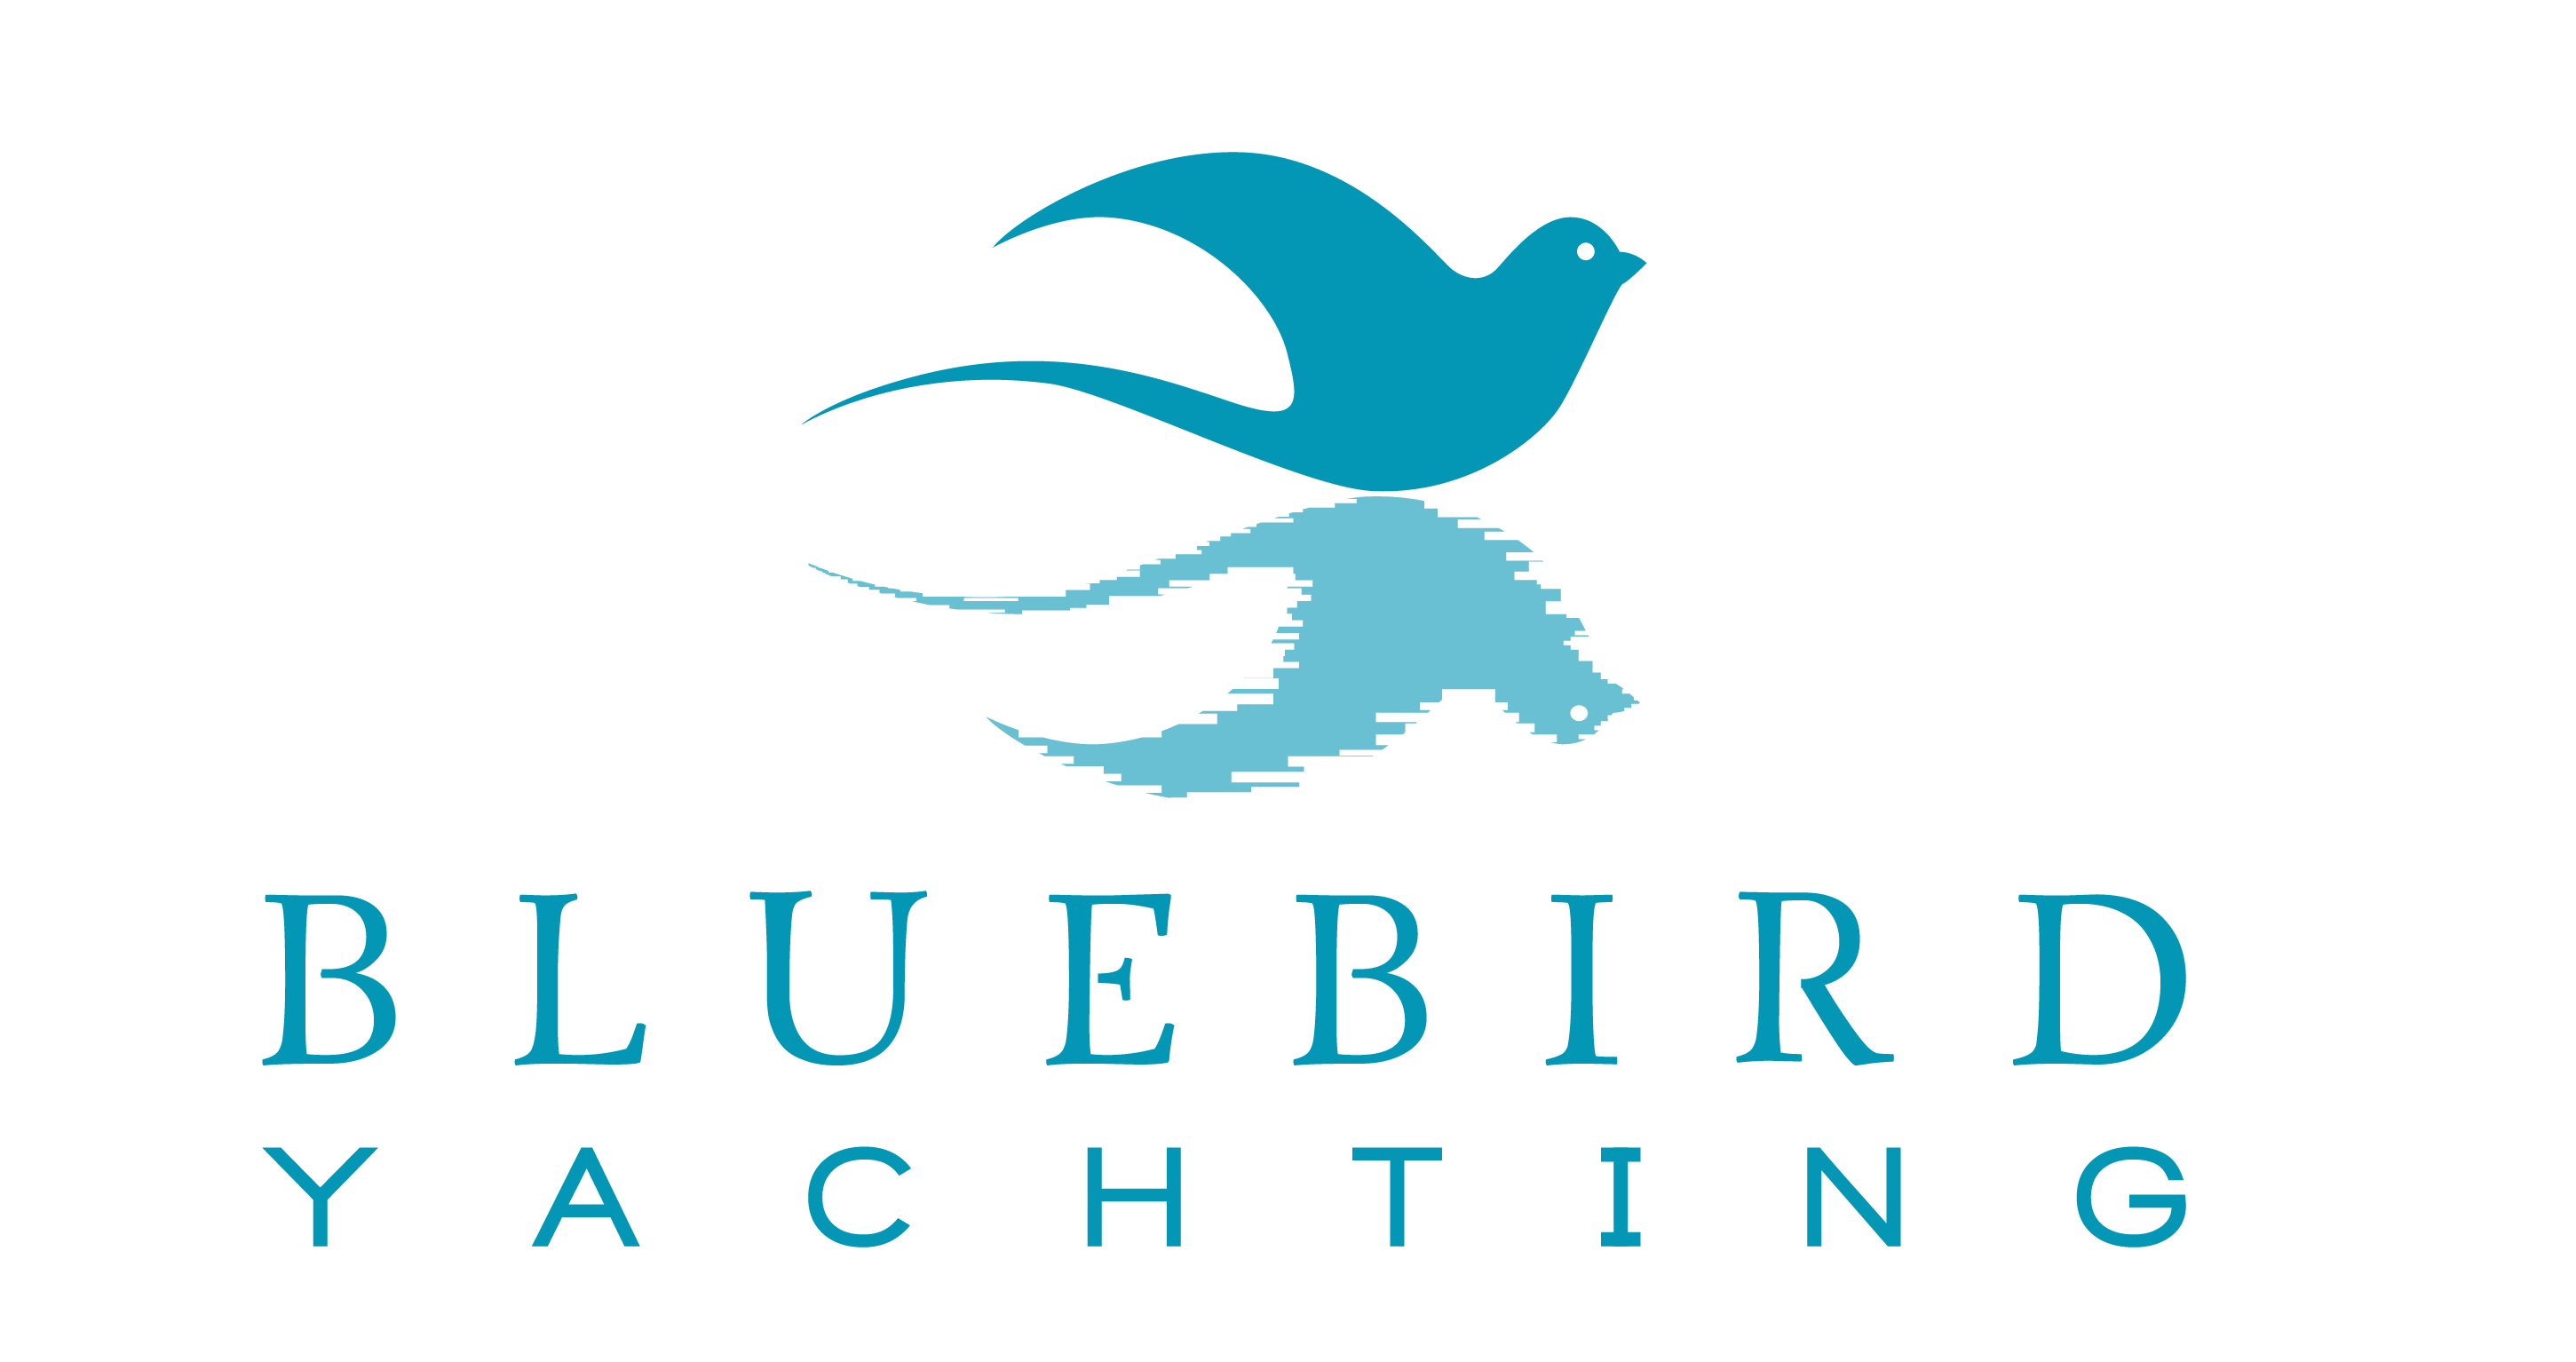 Bluebird Yachting | Windward Islands | Bluebird Yachting